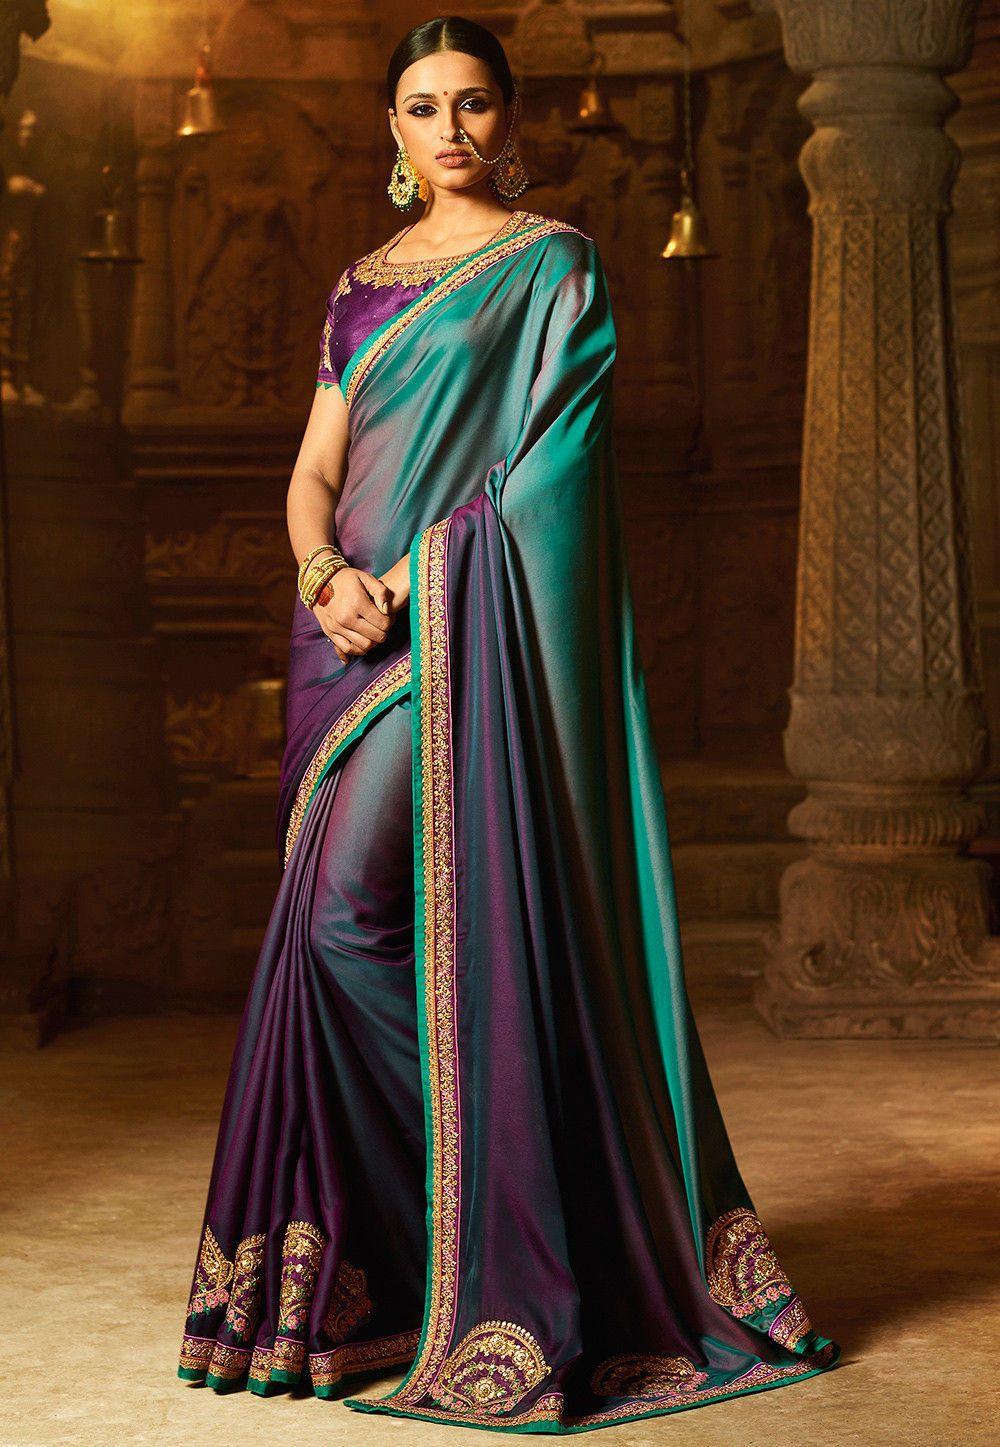 fc7623954058 Buy Ombre Satin Saree in Teal Green and Purple online, Item code: STYA428,  Color: Green, Purple, Occasion: Party, Work: Contemporary, Resham, Stone  Work, ...